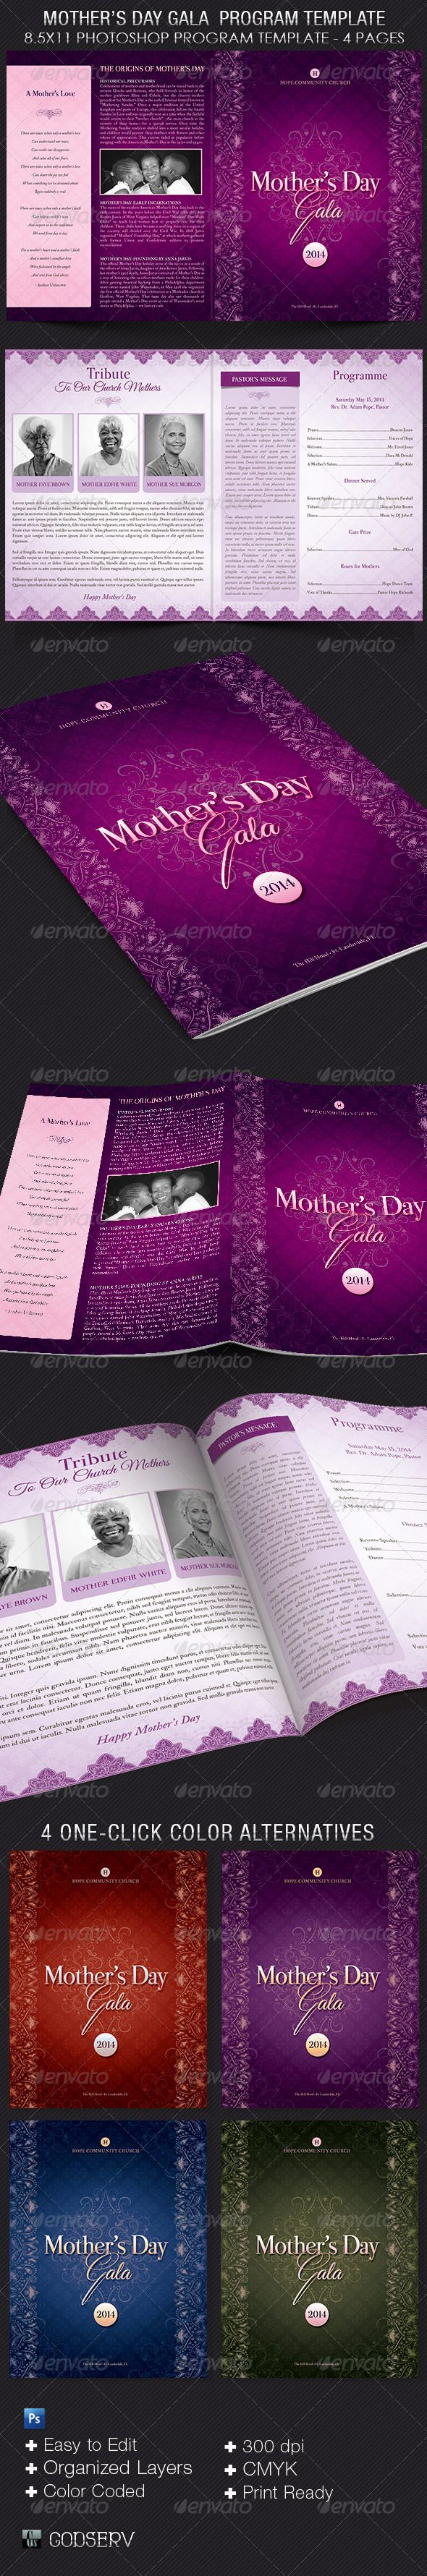 mother day program template